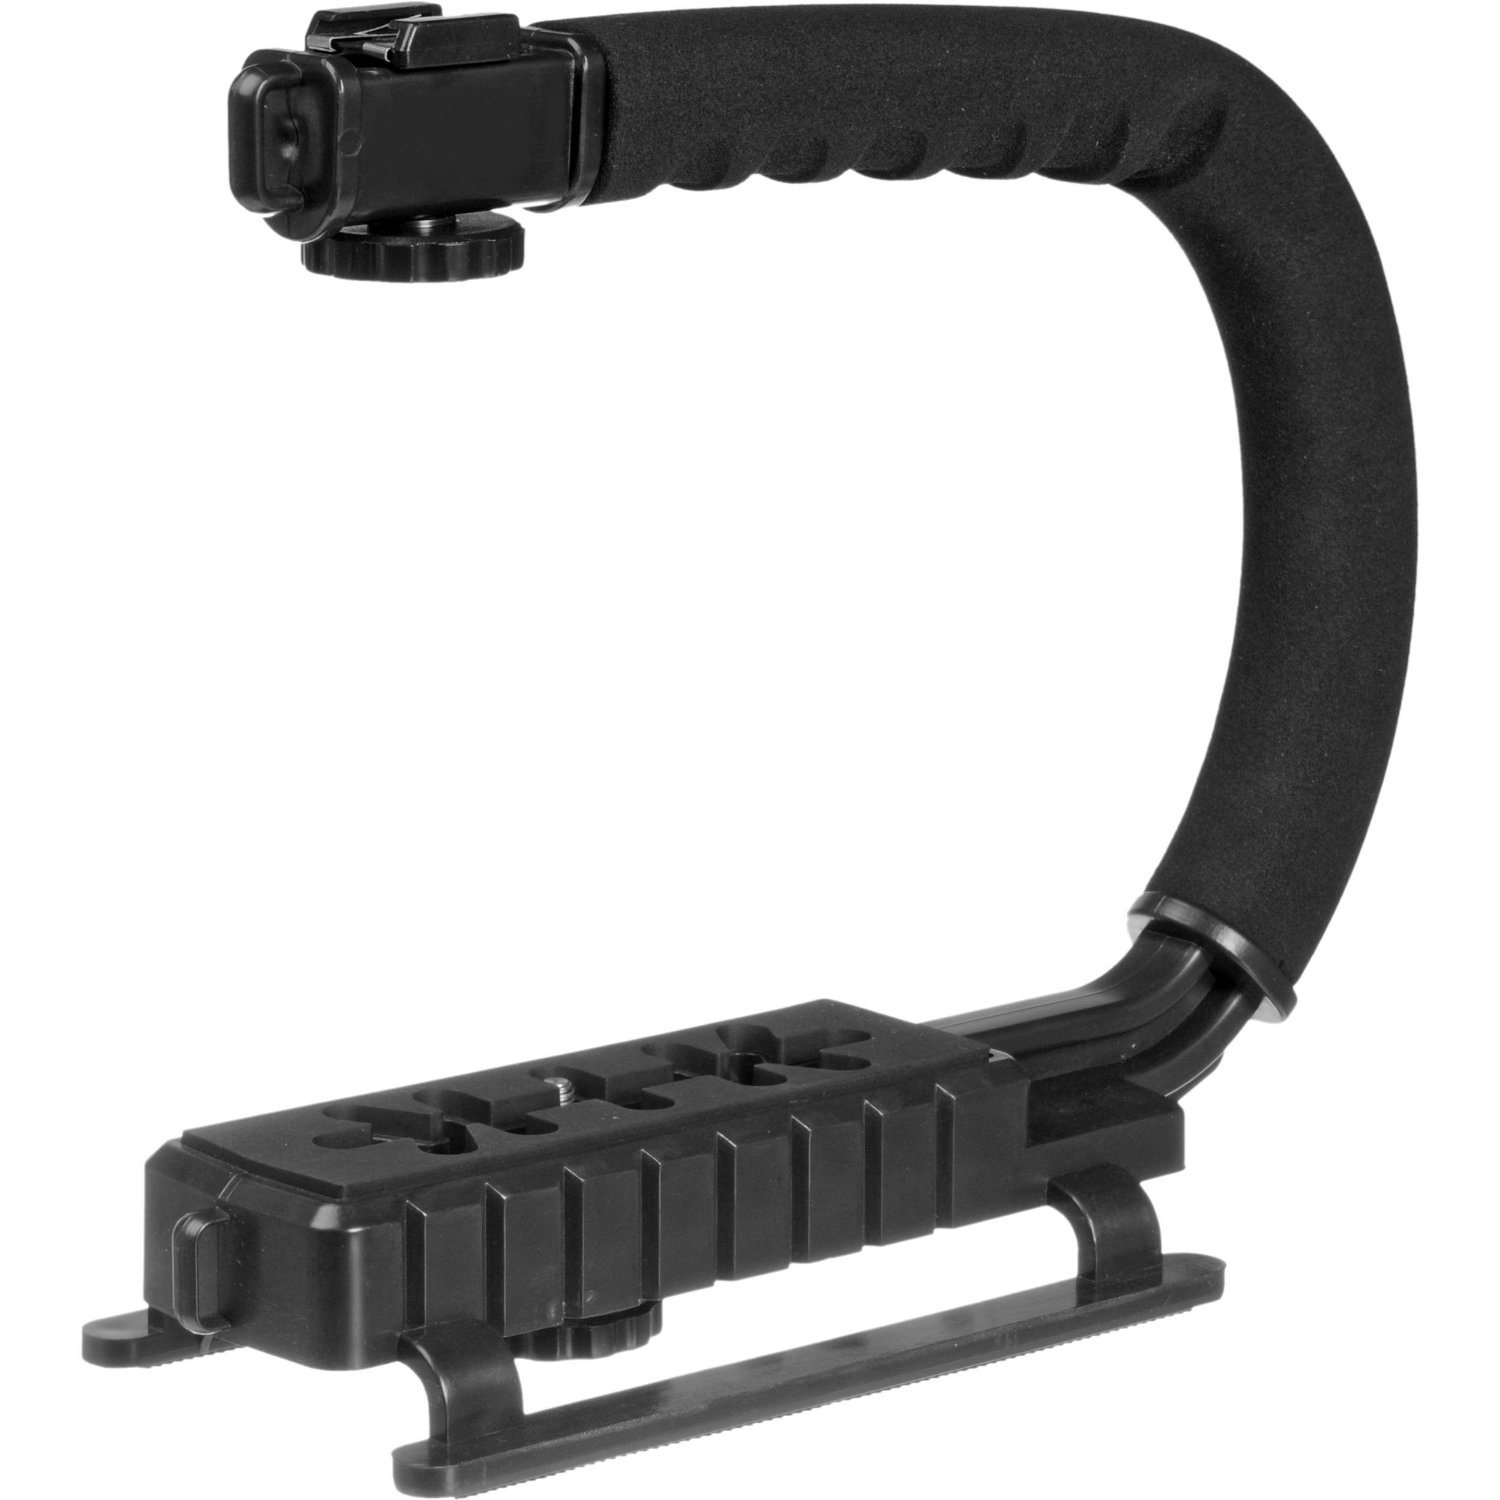 Samsung GX-1S Vertical Shoe Mount Stabilizer Handle Pro Video Stabilizing Handle Grip for